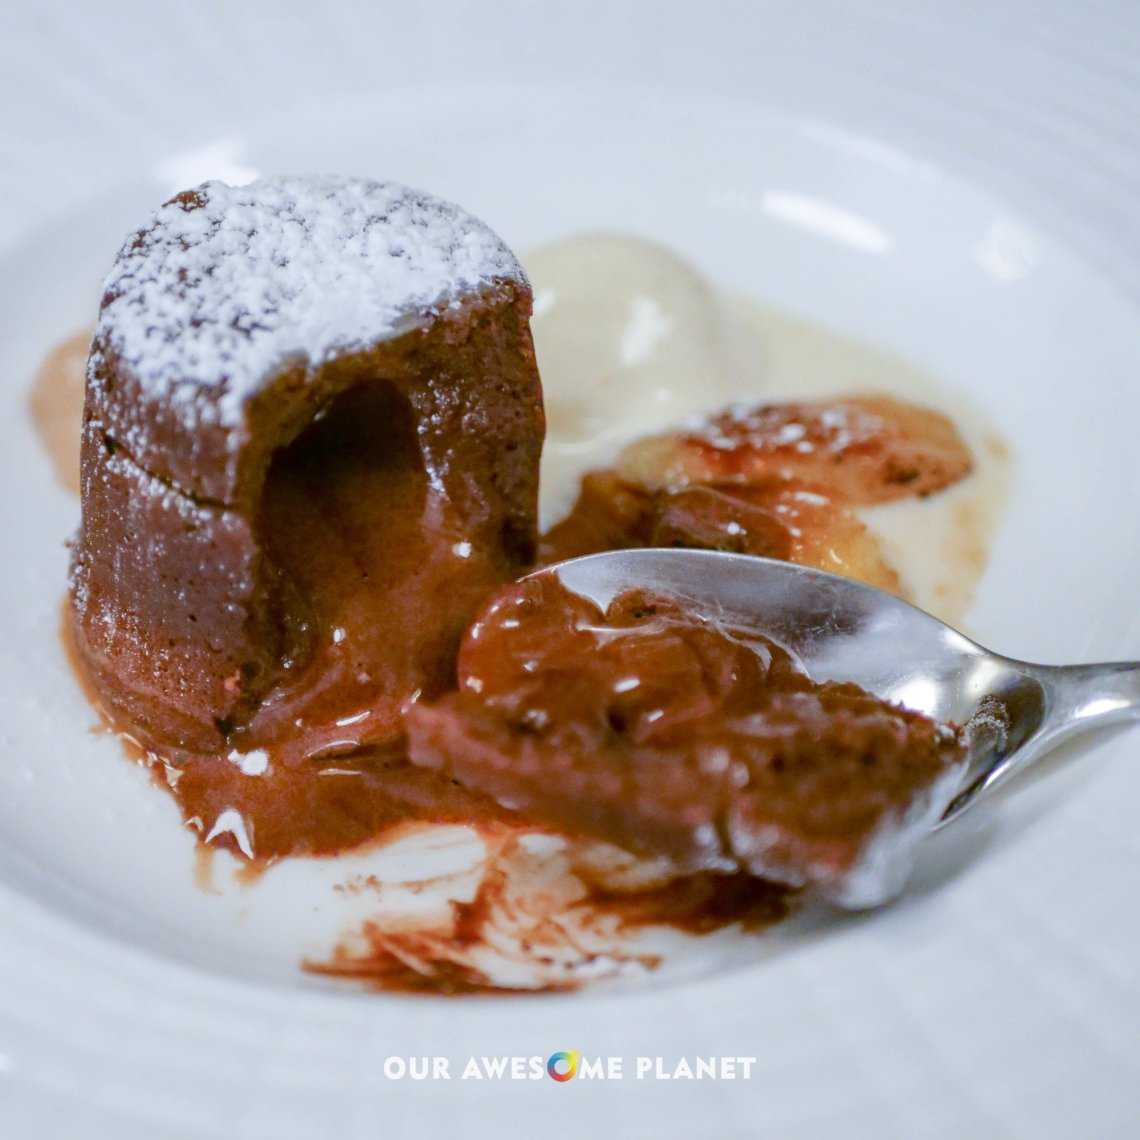 Hot Chocolate Souffle (₱360). Colombian coffee foam, caramelized banana, and vanilla ice cream.